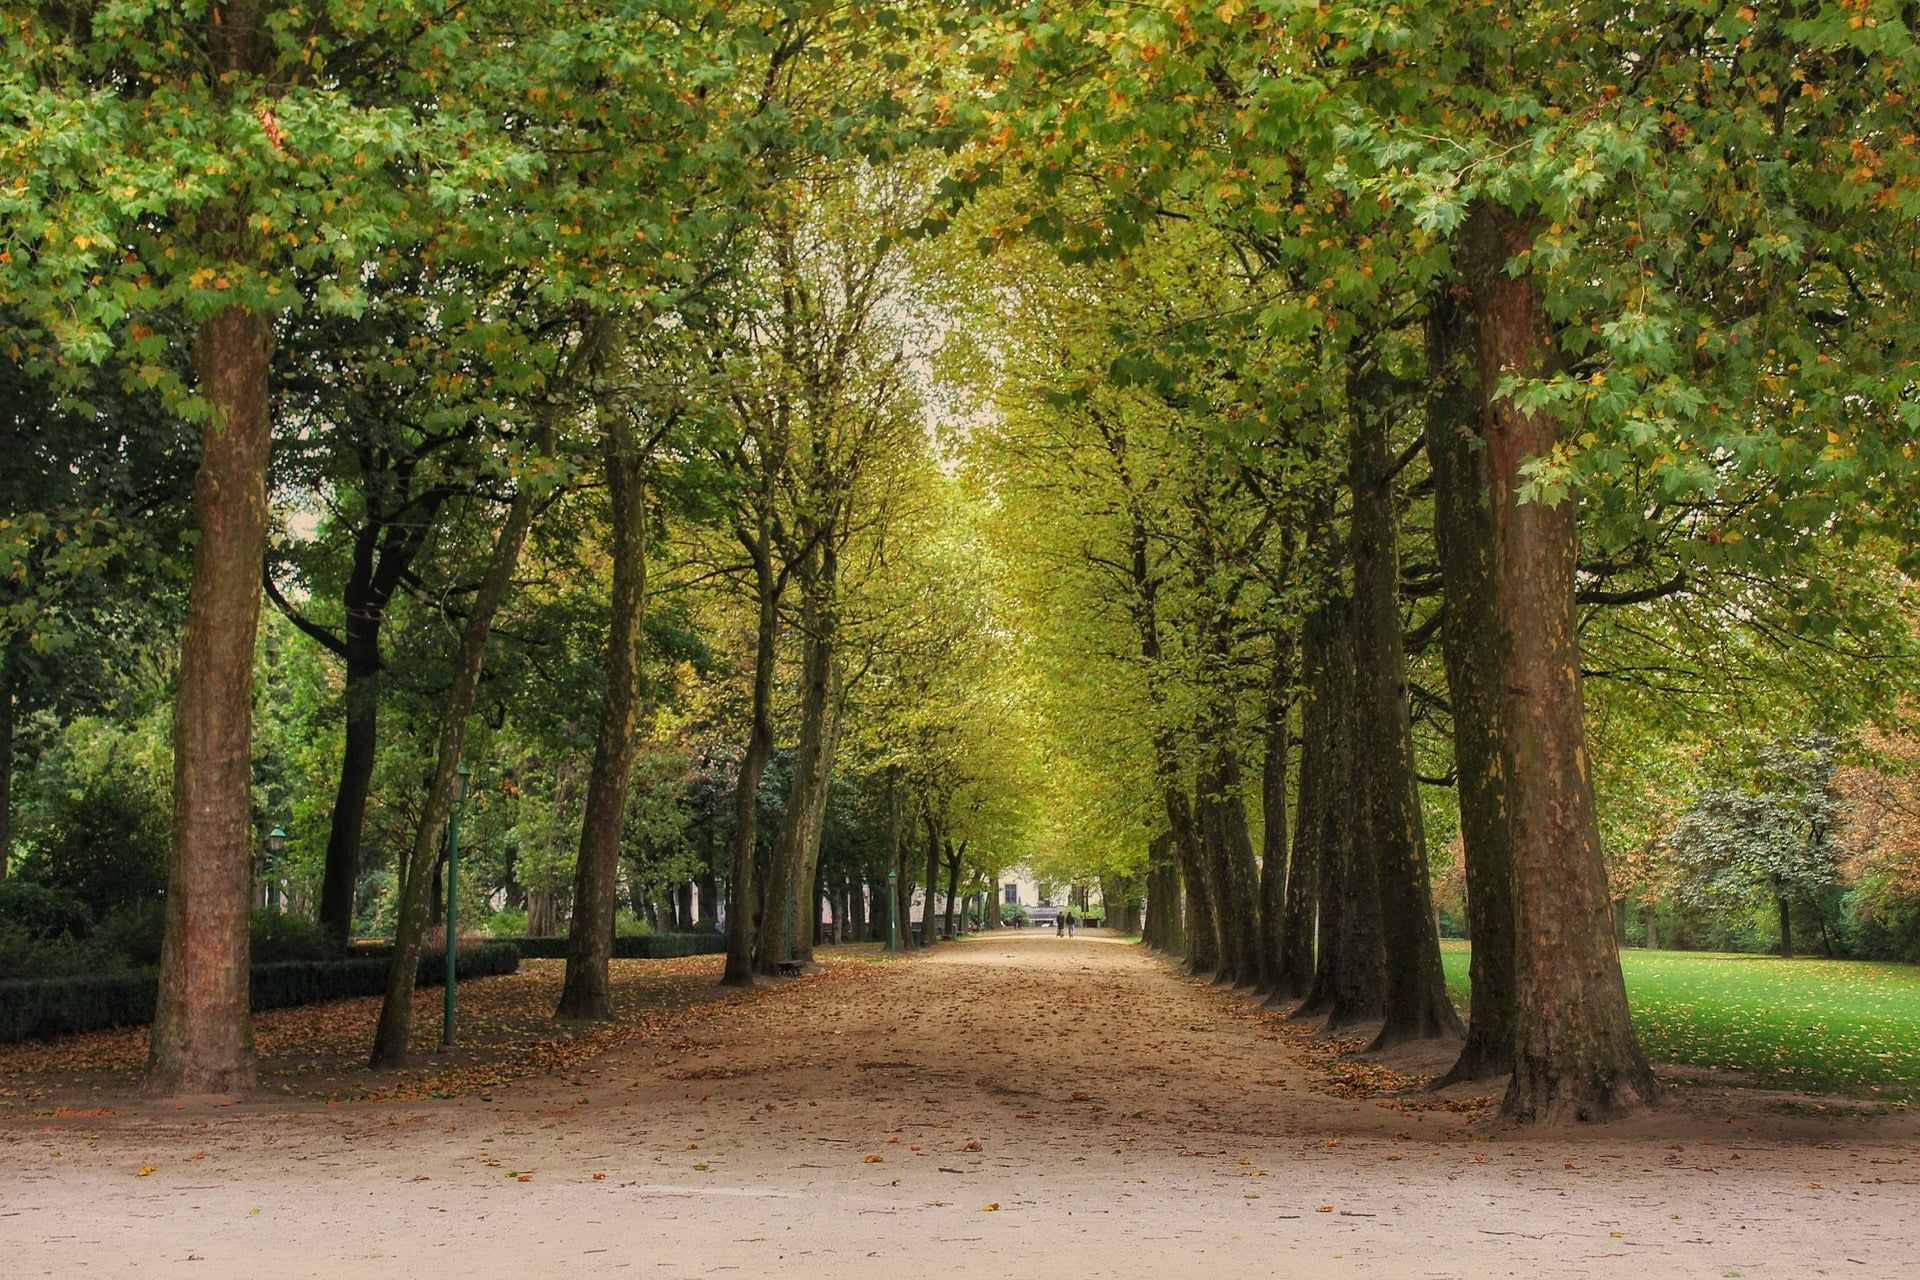 green-trees-lining-path-in-brussels-park-in-spring